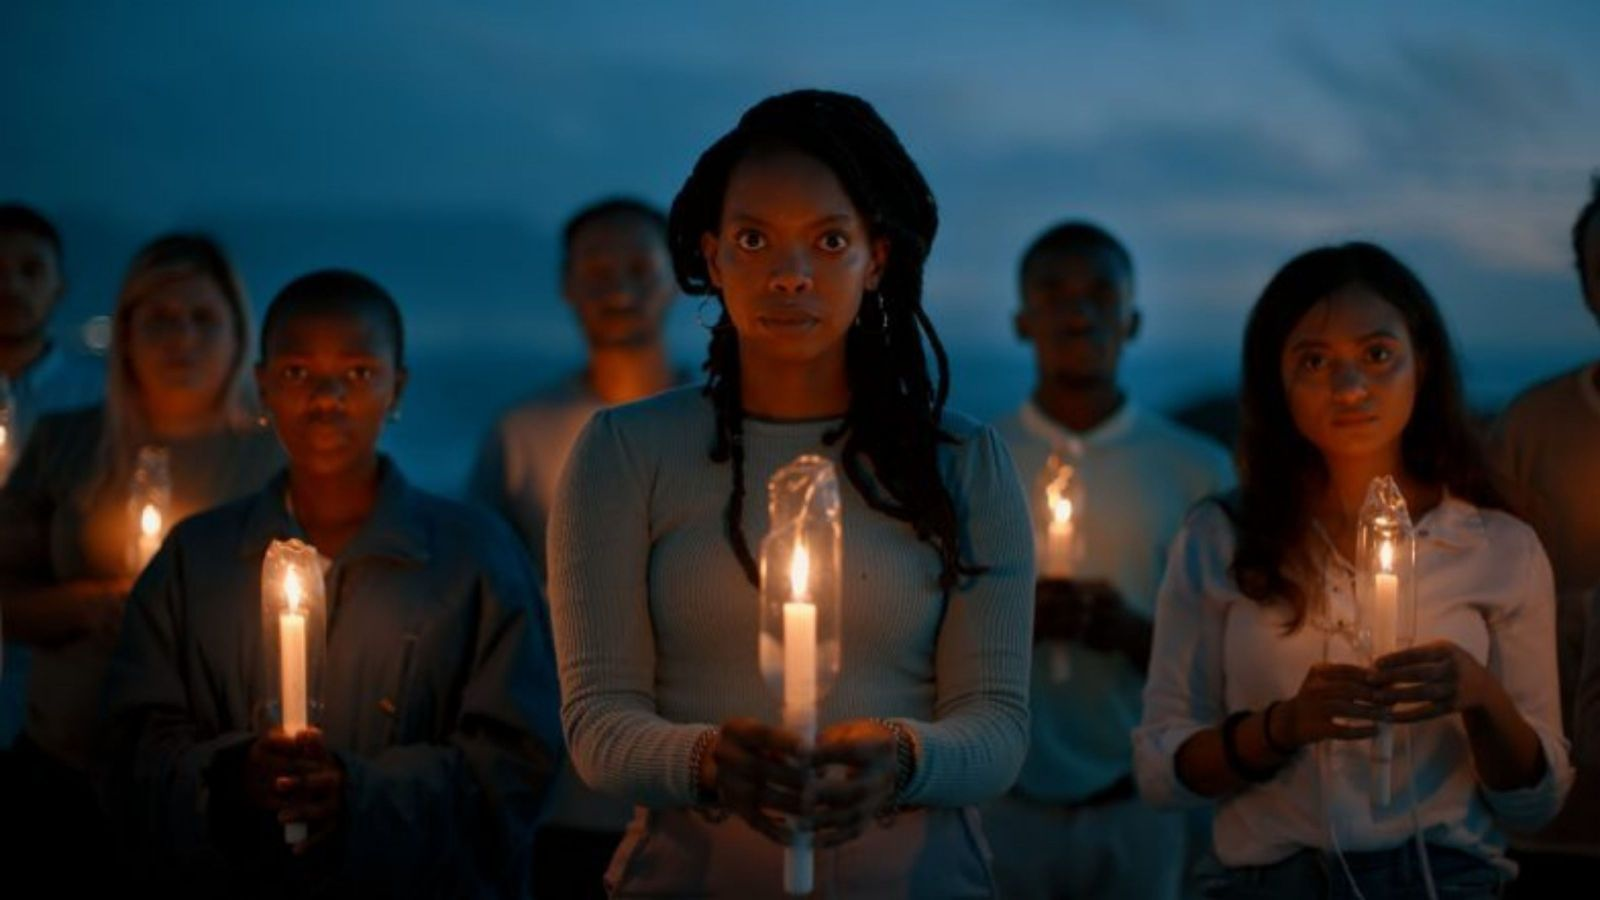 people in twilight holding candles